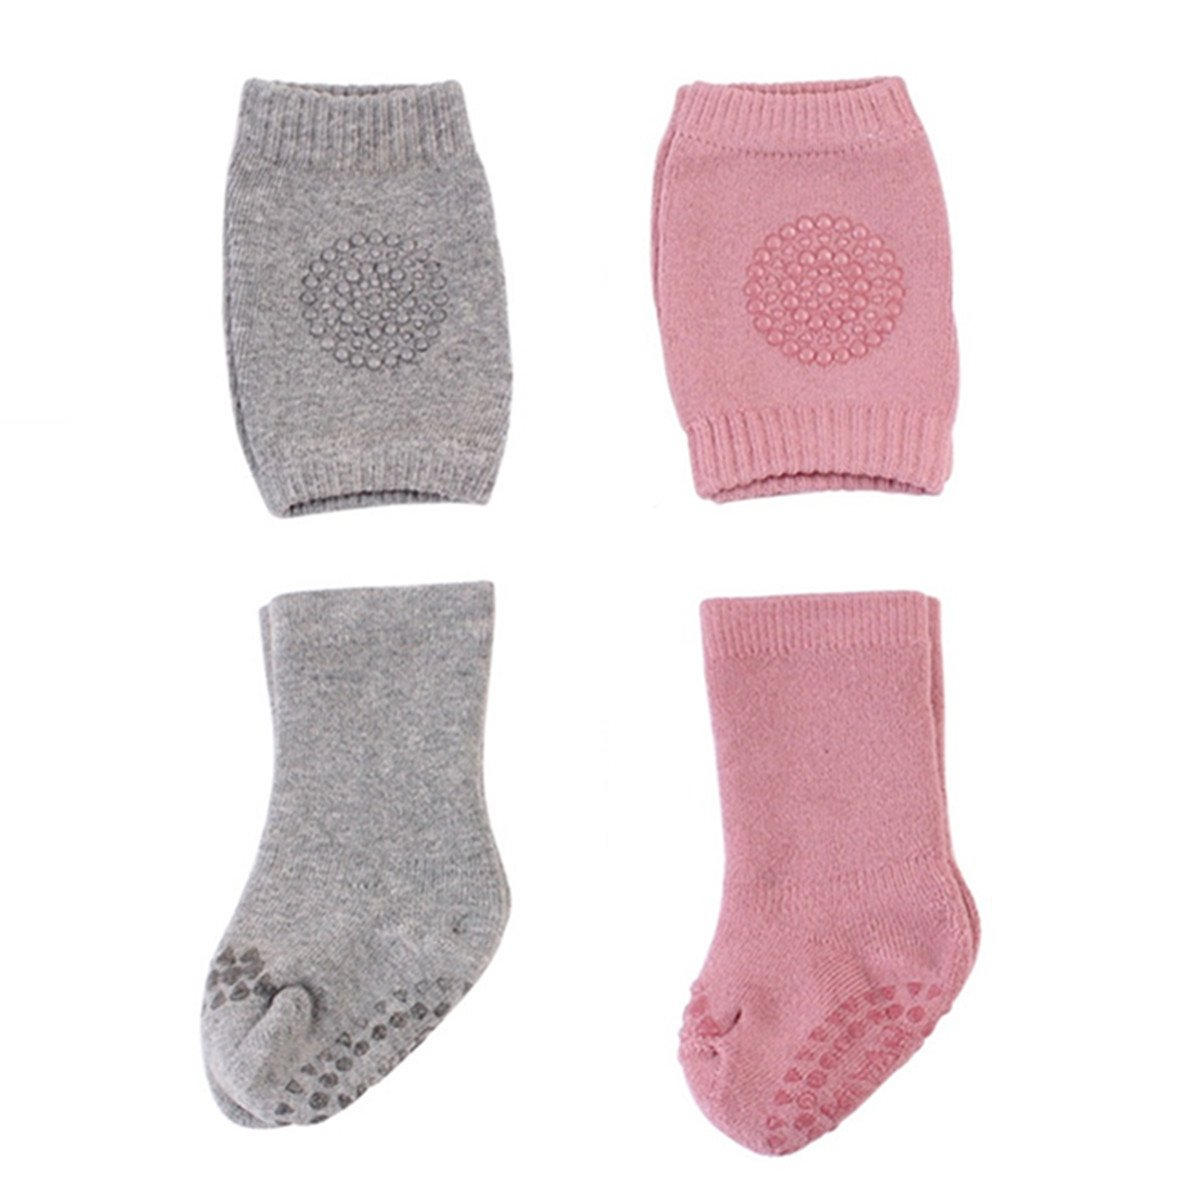 2-Pack Toddler Baby Crawling Knee Pads Non-slip Leg Warmer Protector With Socks